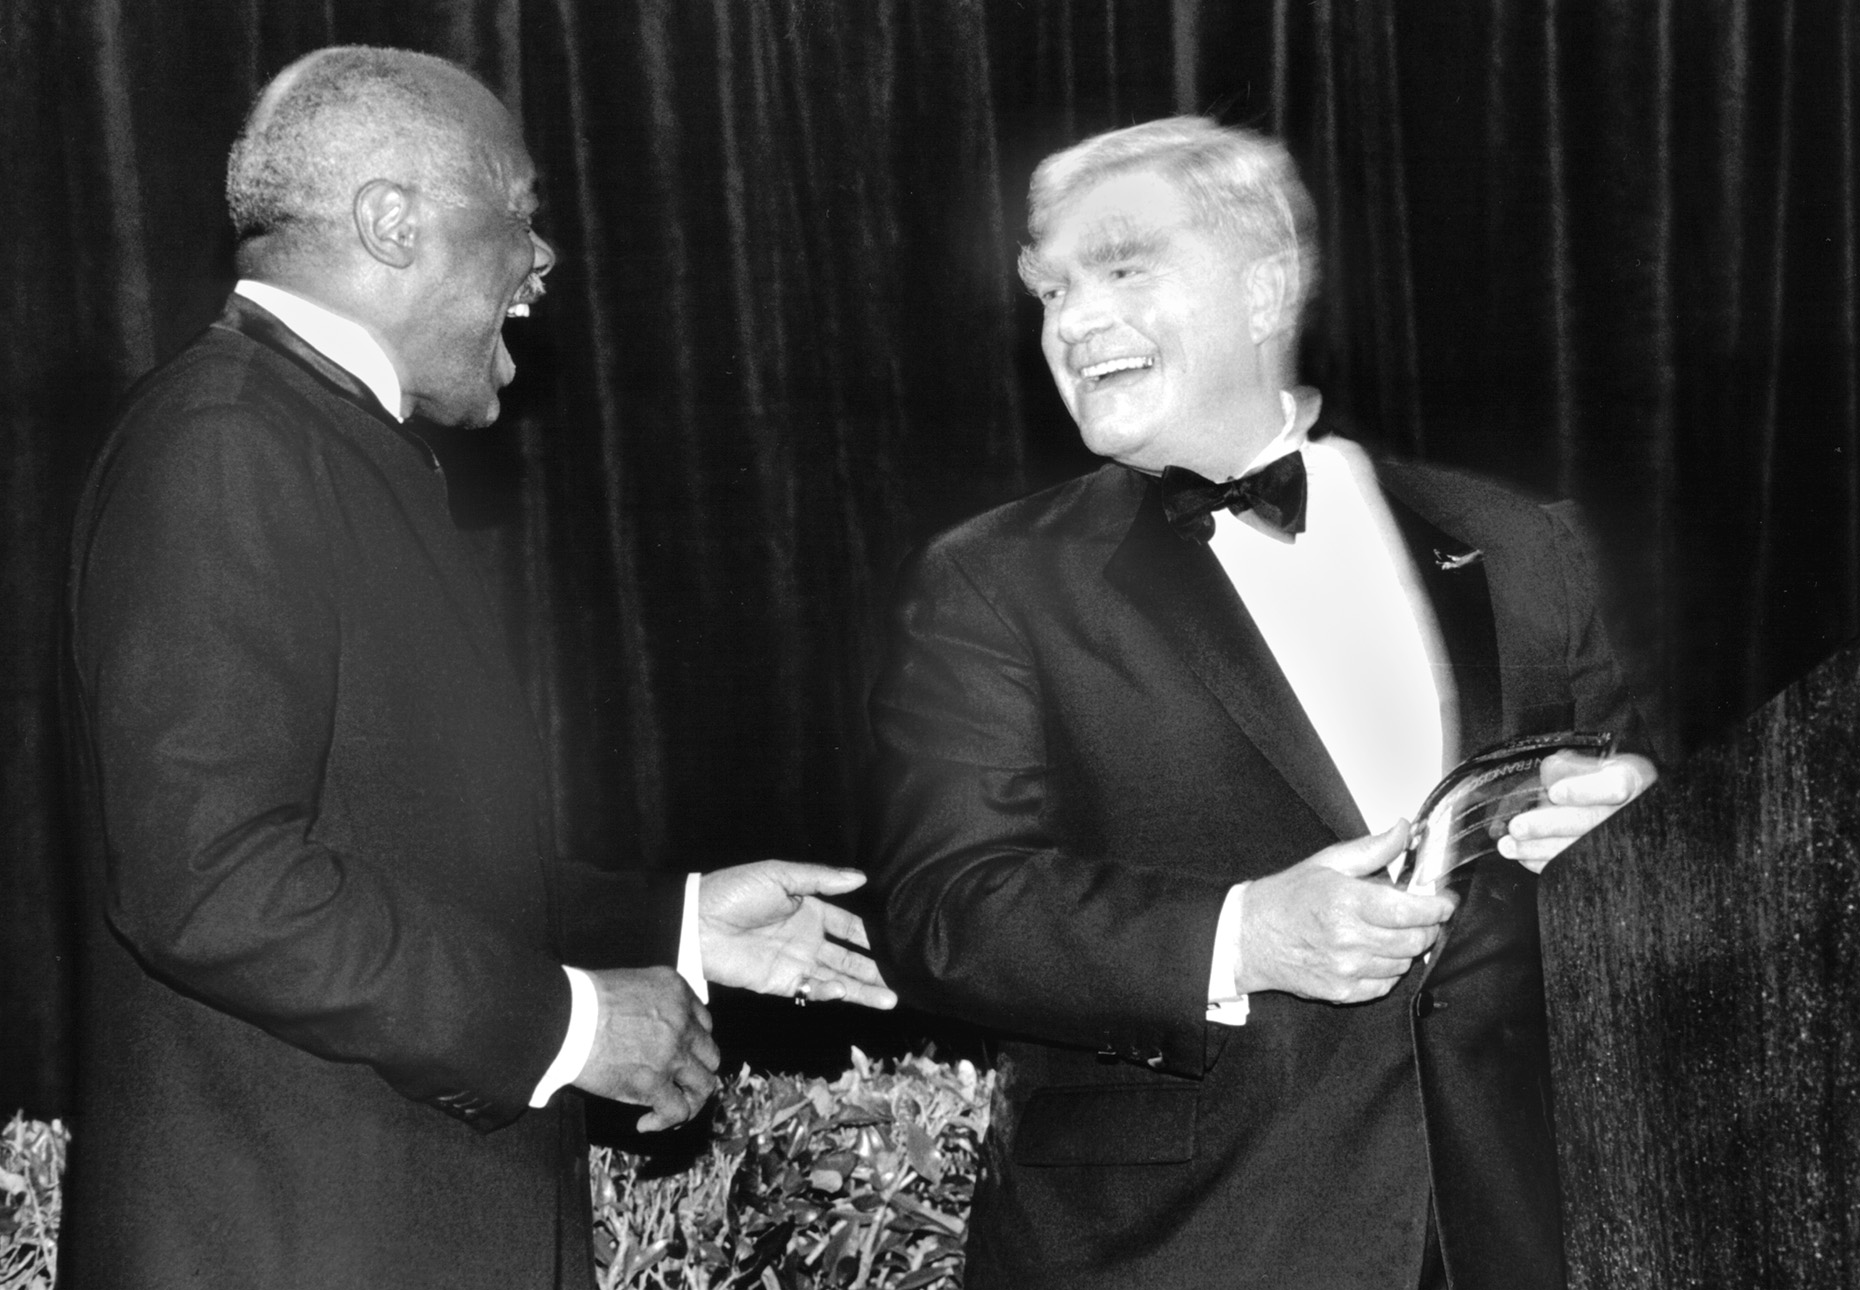 Mayor Willie L. Brown Jr. and George Gund III at the 44th San Francisco International Film Festival, 2001.  Photo by Pamela Gentile.